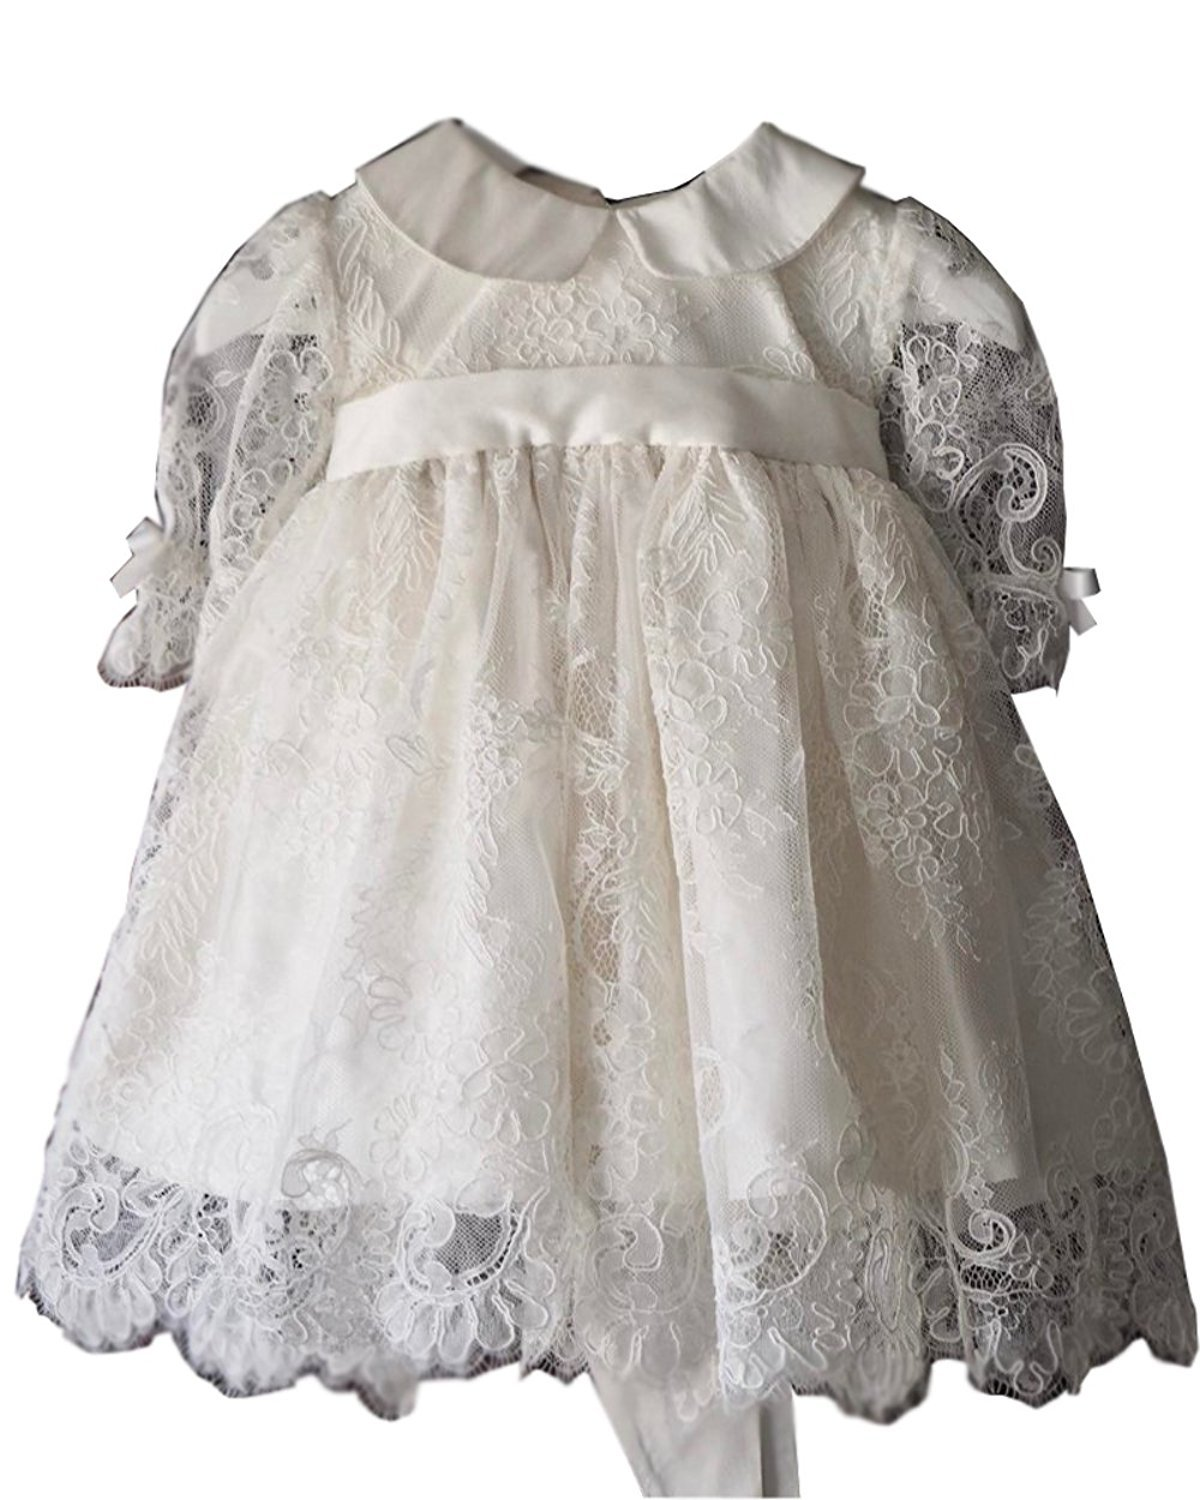 Banfvting Lace Infant Christening Gowns Baby Girls Dress Long